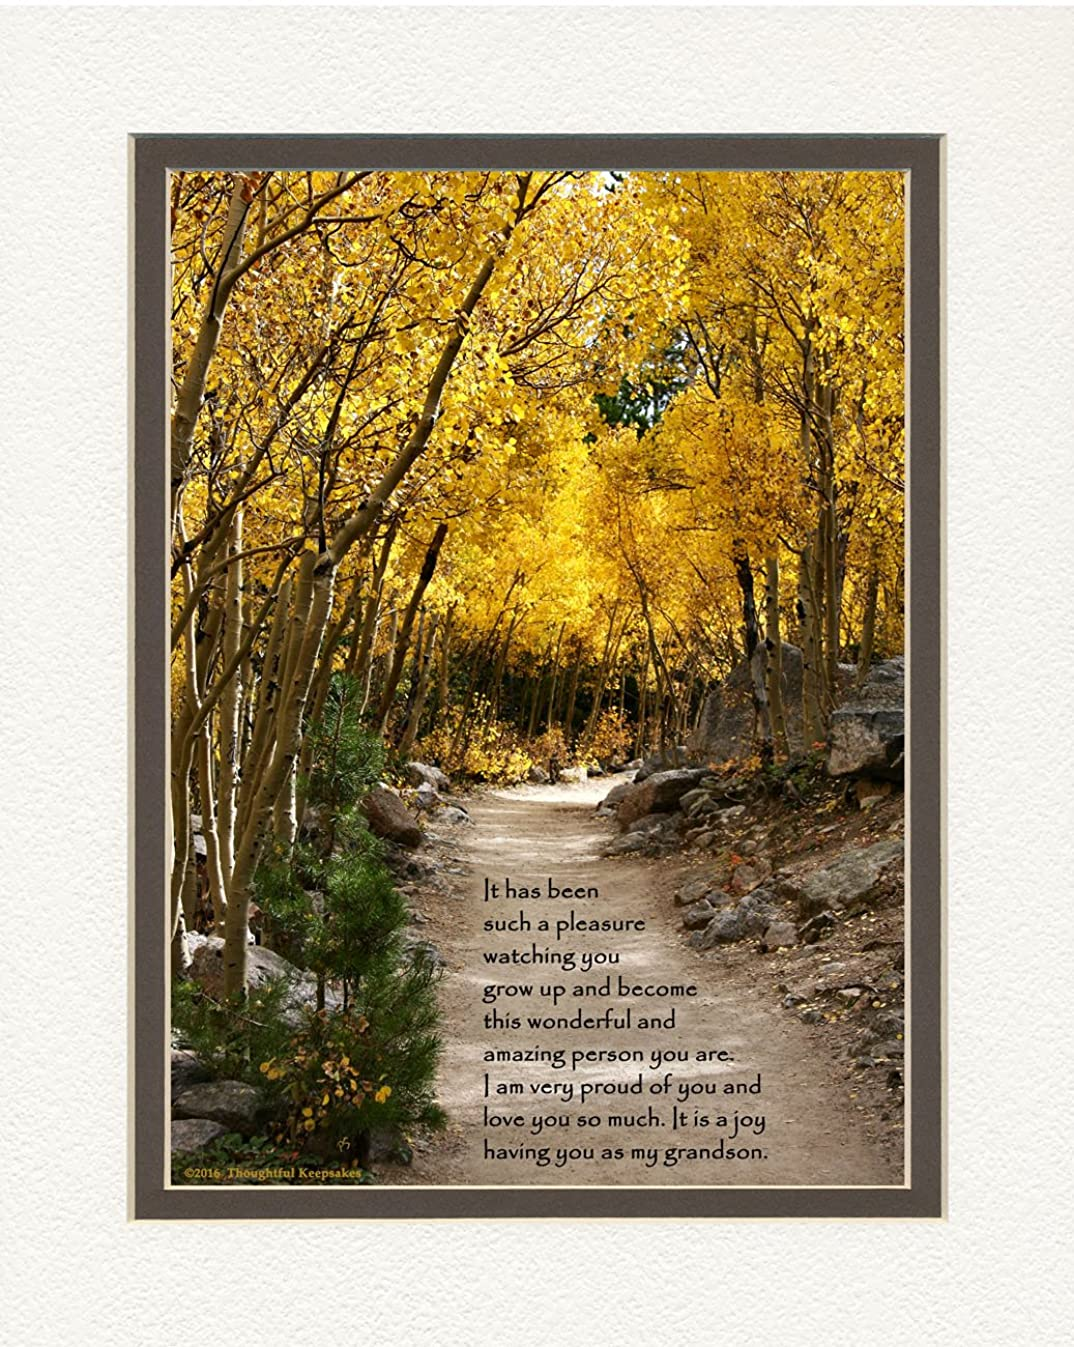 Grandson Gift with Poem Watching You Grow Up and Become This Amazing Person You Are. Aspen Path Photo, 8x10 Double Matted. Special Birthday, for Grandson.